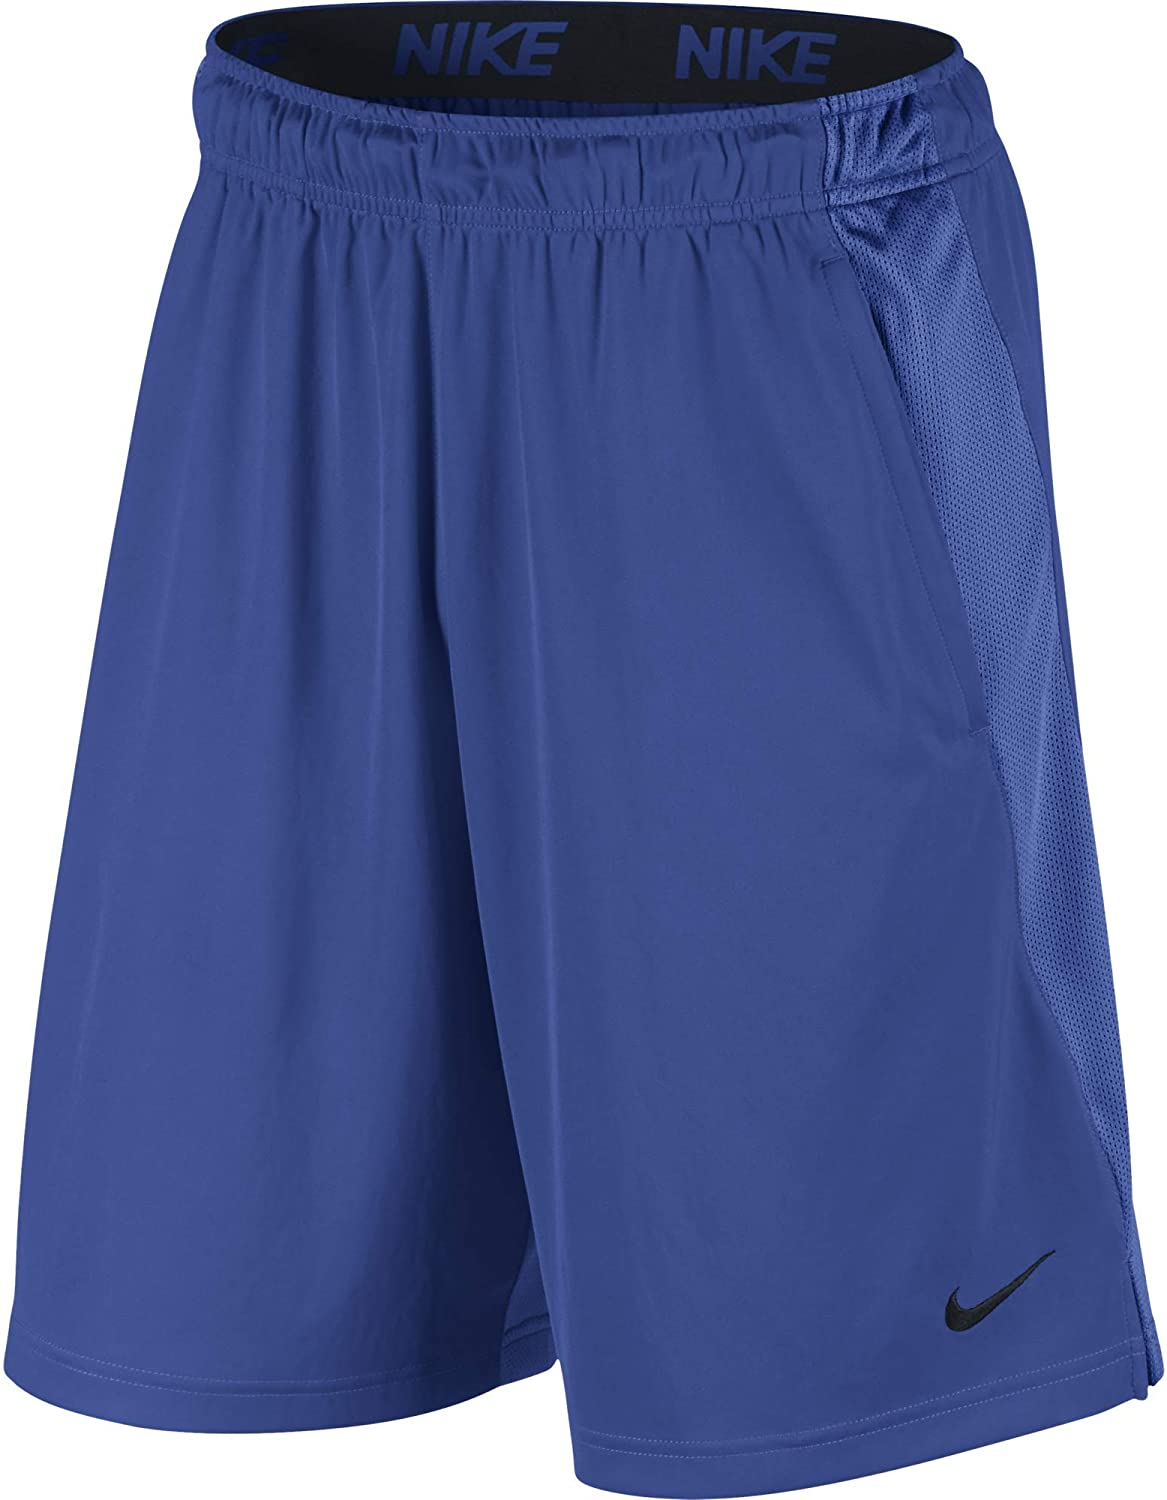 Nike Men's Dry Training Shorts: Clothing